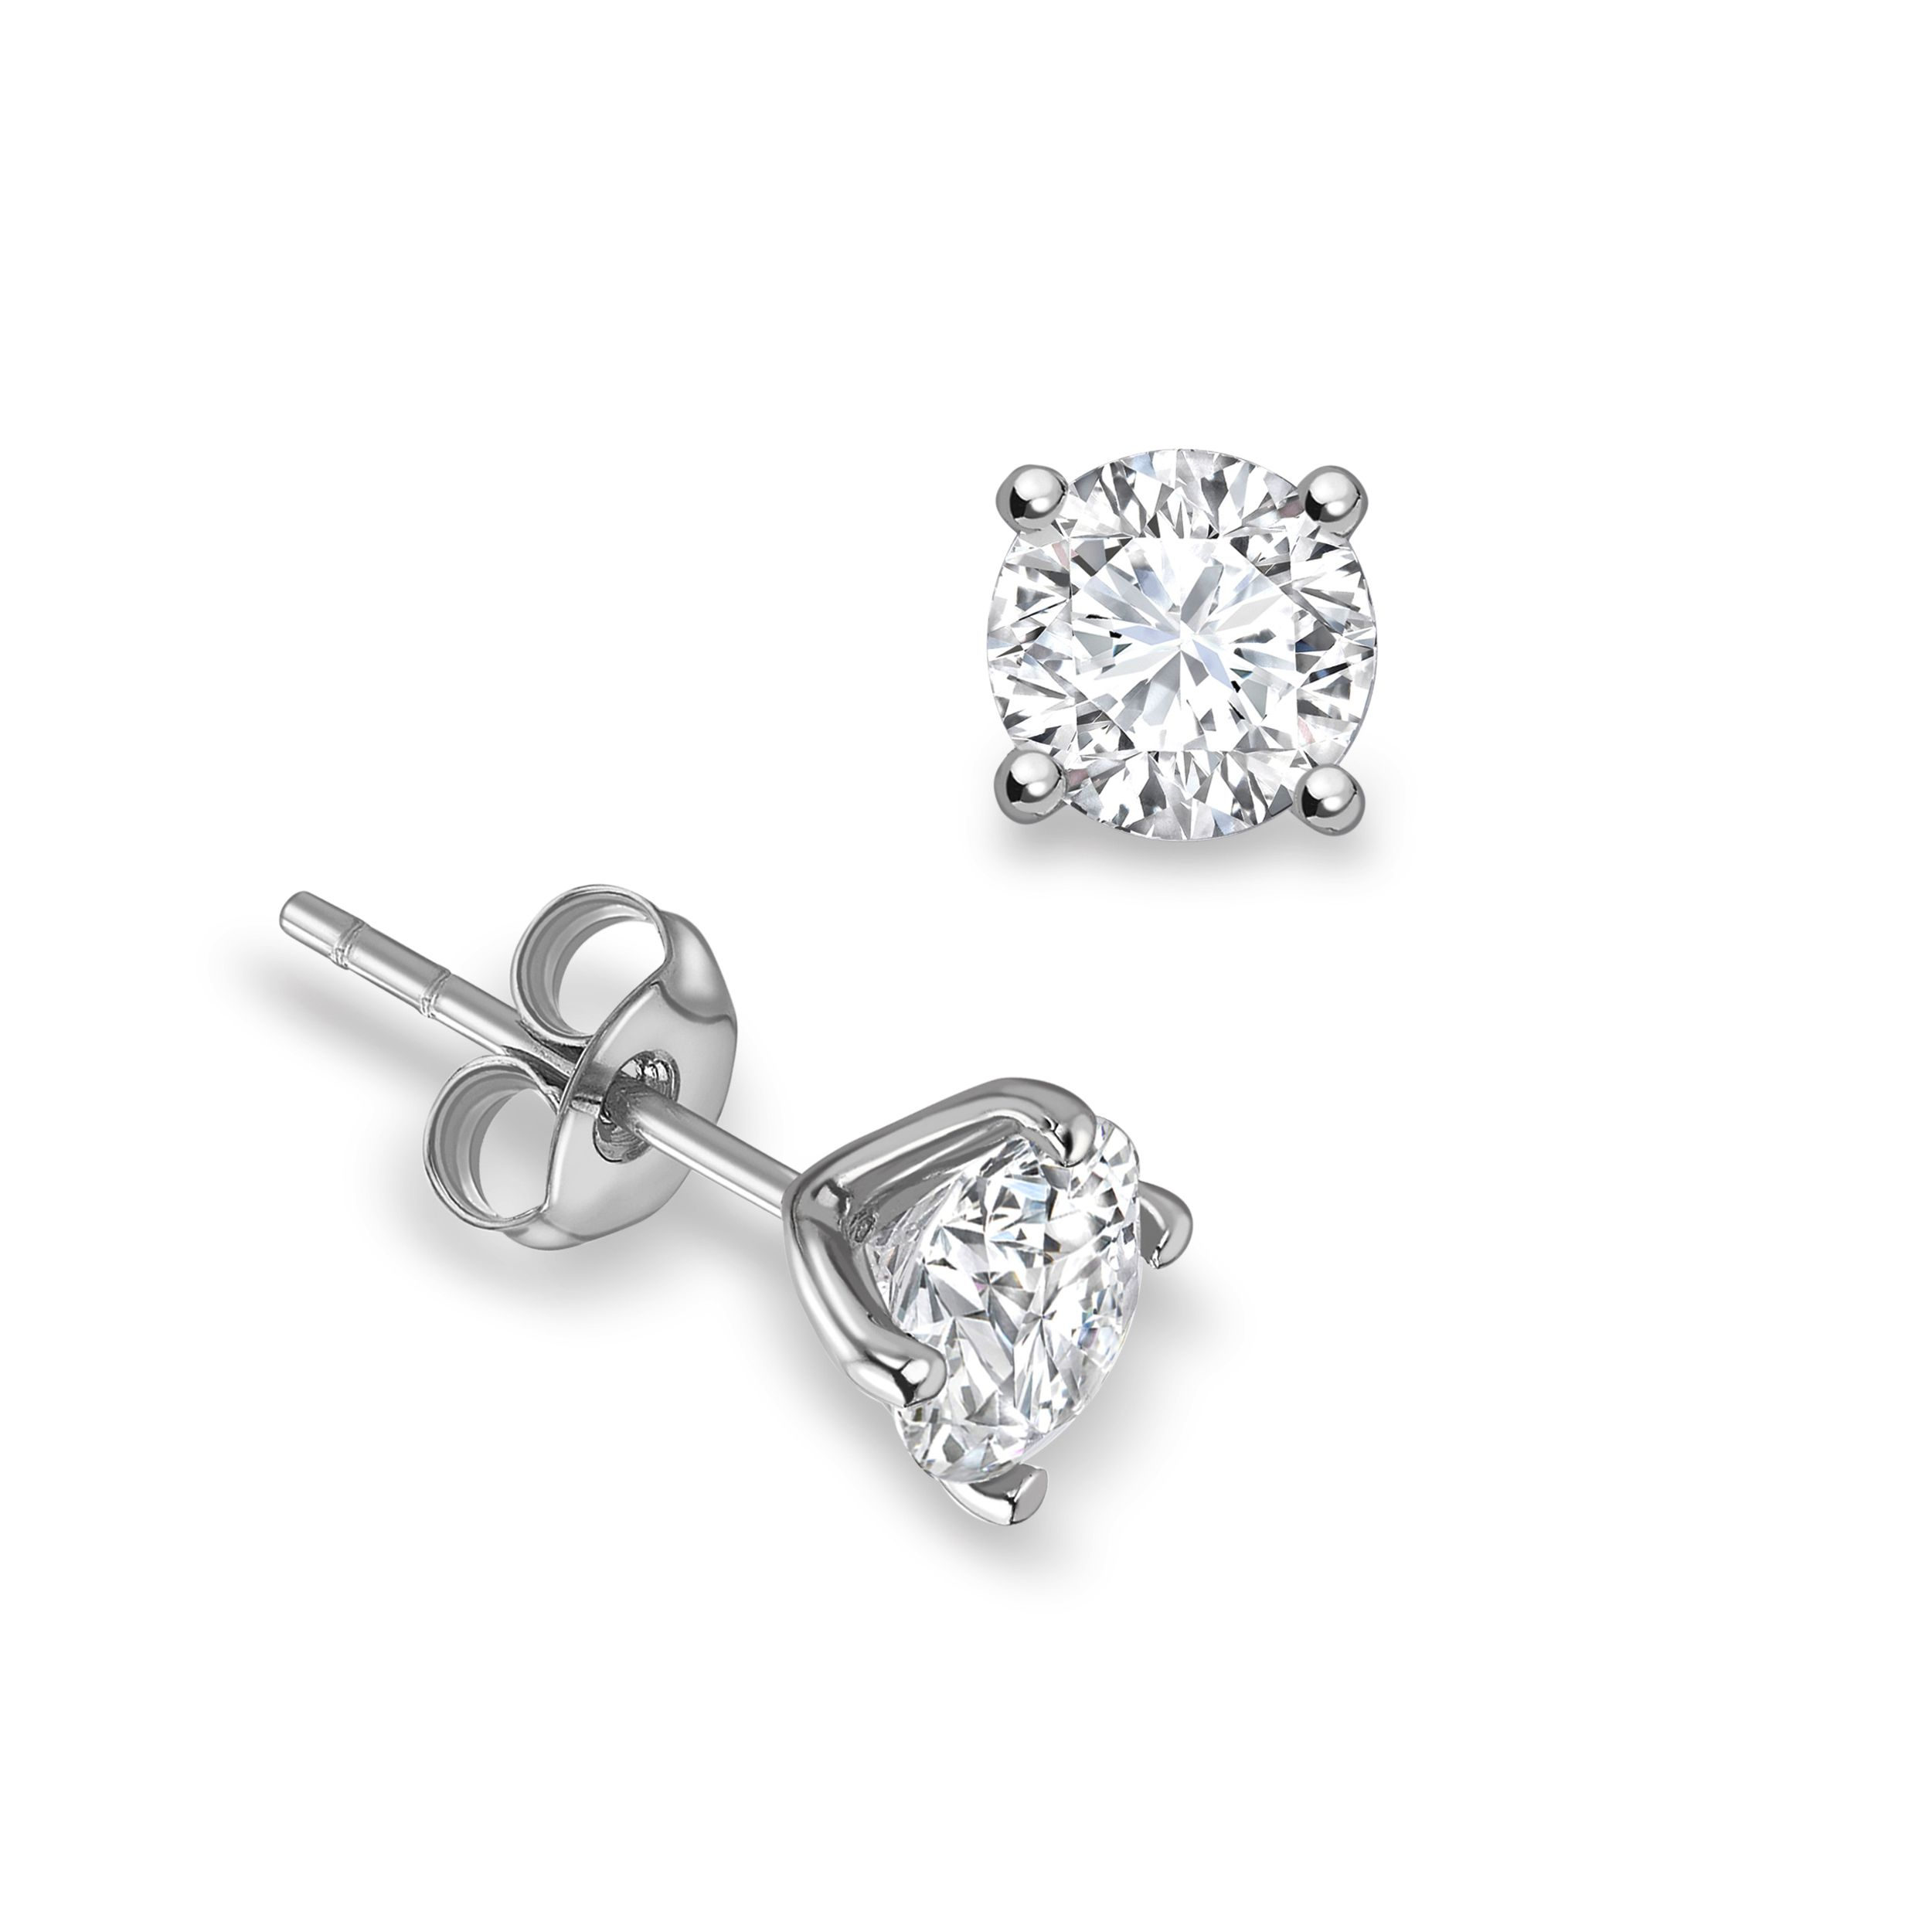 4 Open Prong Round Brilliant Stud Diamond Earrings Available in Rose, Yellow, White Gold and Platinum